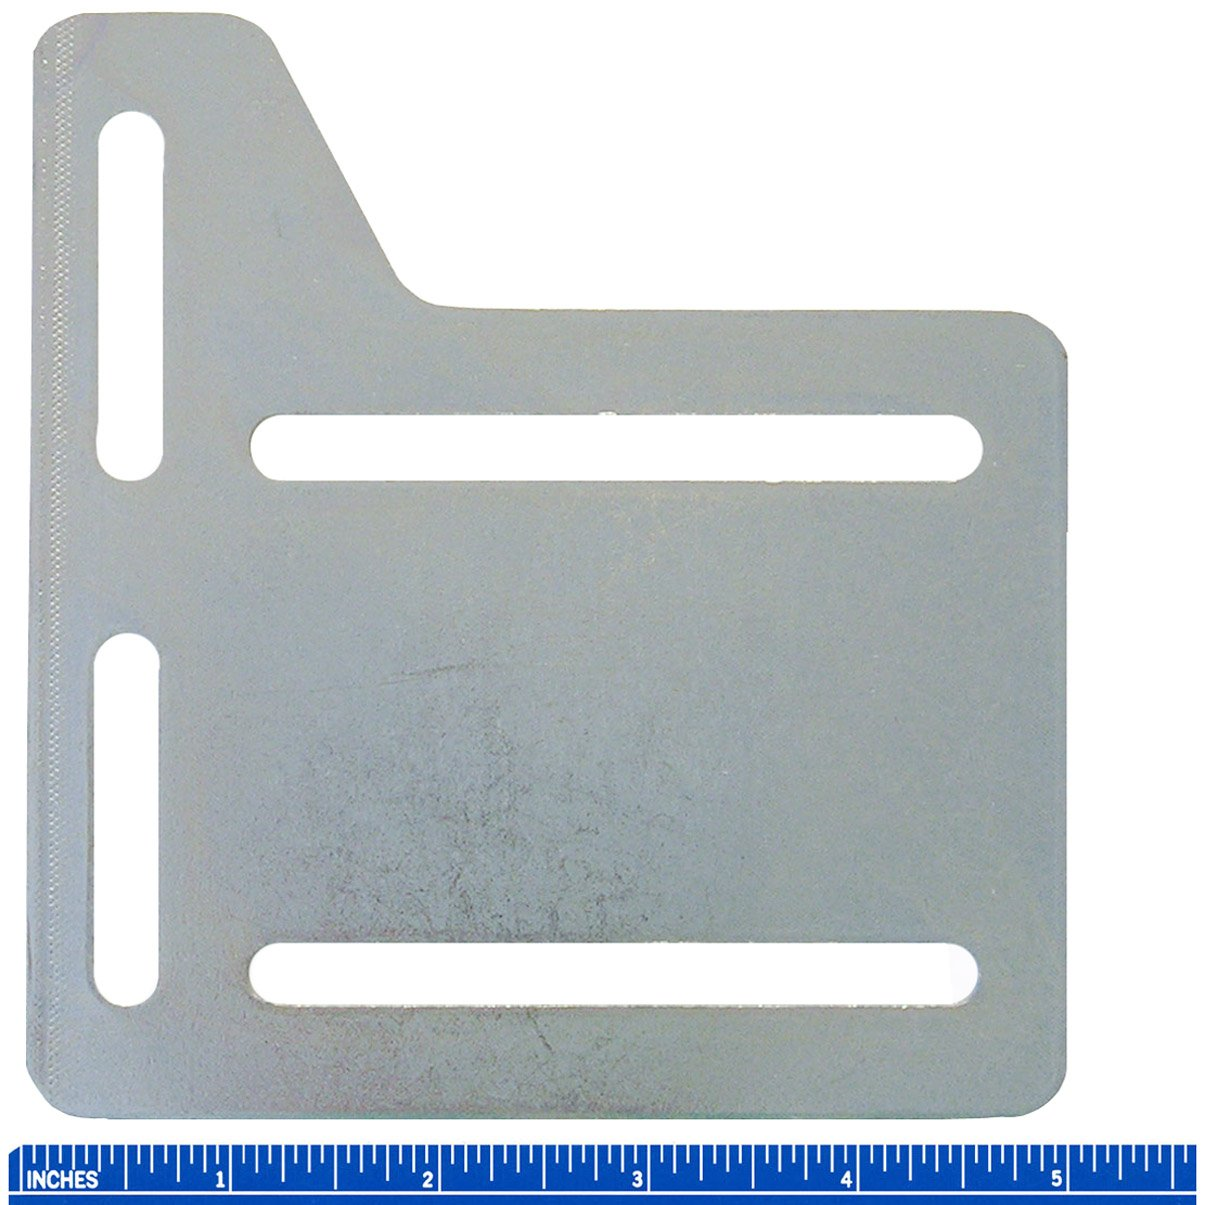 AADAPT AccessoryParts Bed Frame to Headboard Adapter Plates